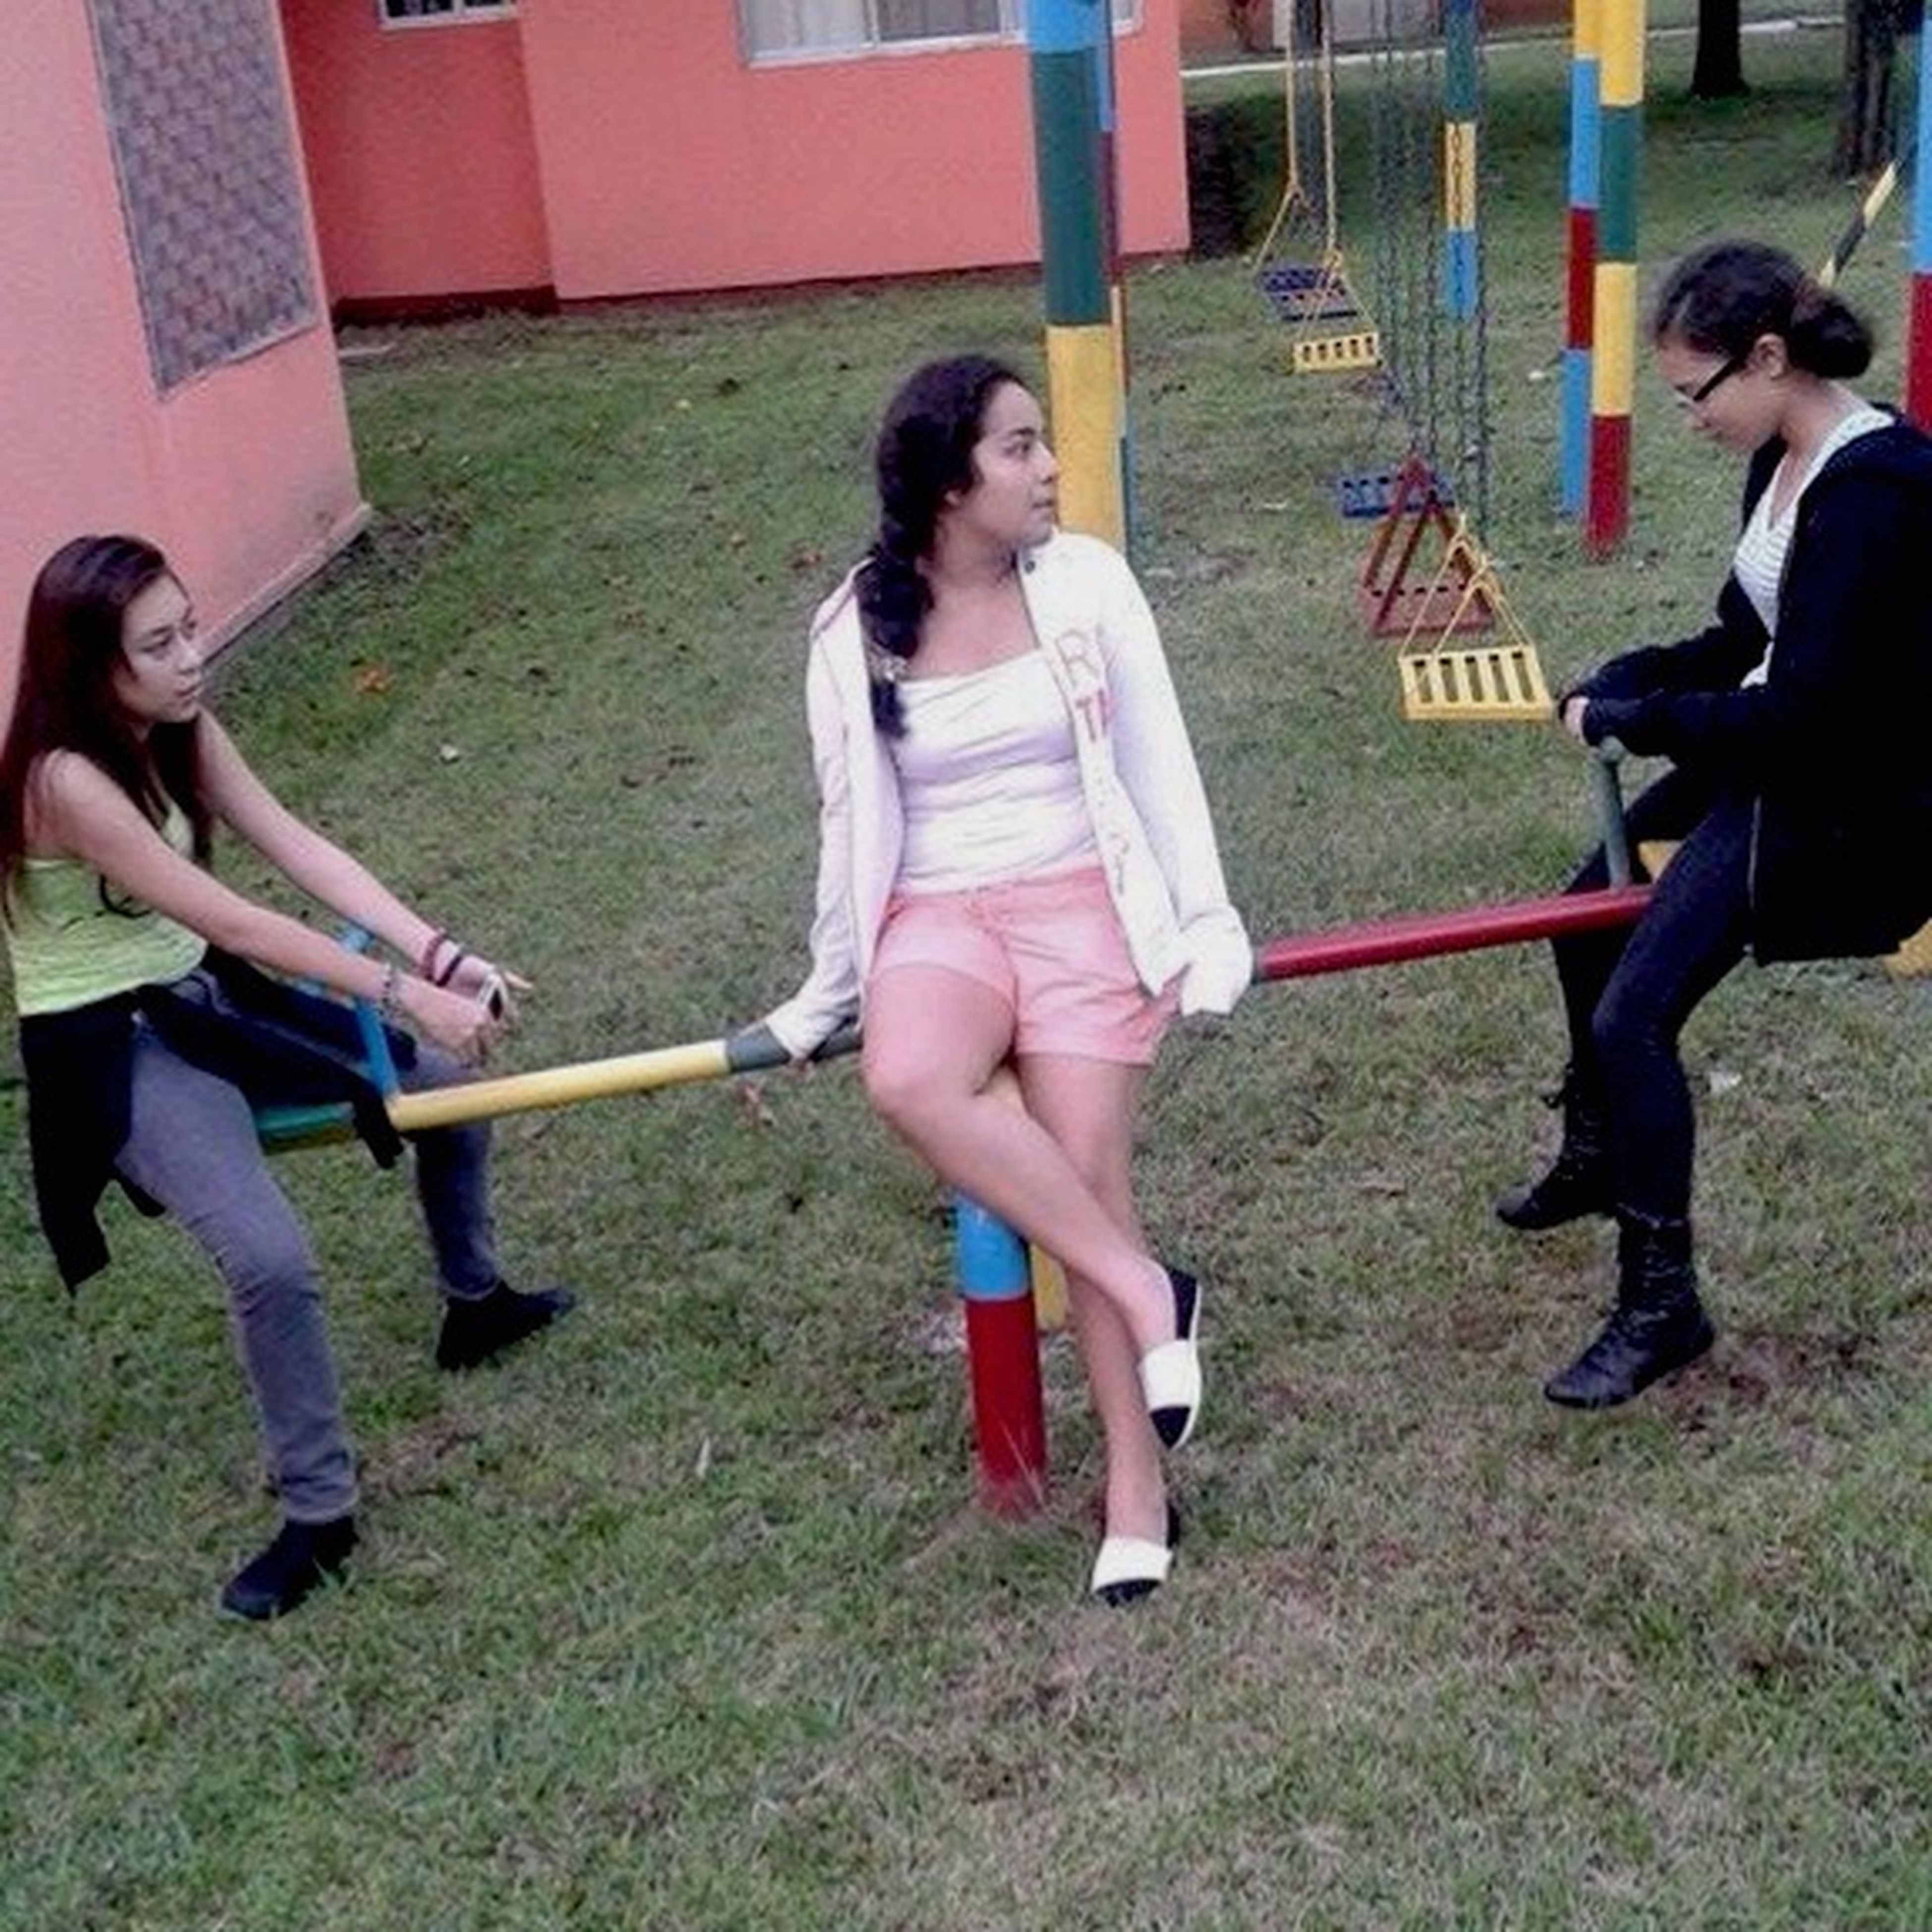 lifestyles, grass, leisure activity, full length, casual clothing, person, childhood, playing, holding, fun, happiness, young adult, park - man made space, enjoyment, sport, field, elementary age, boys